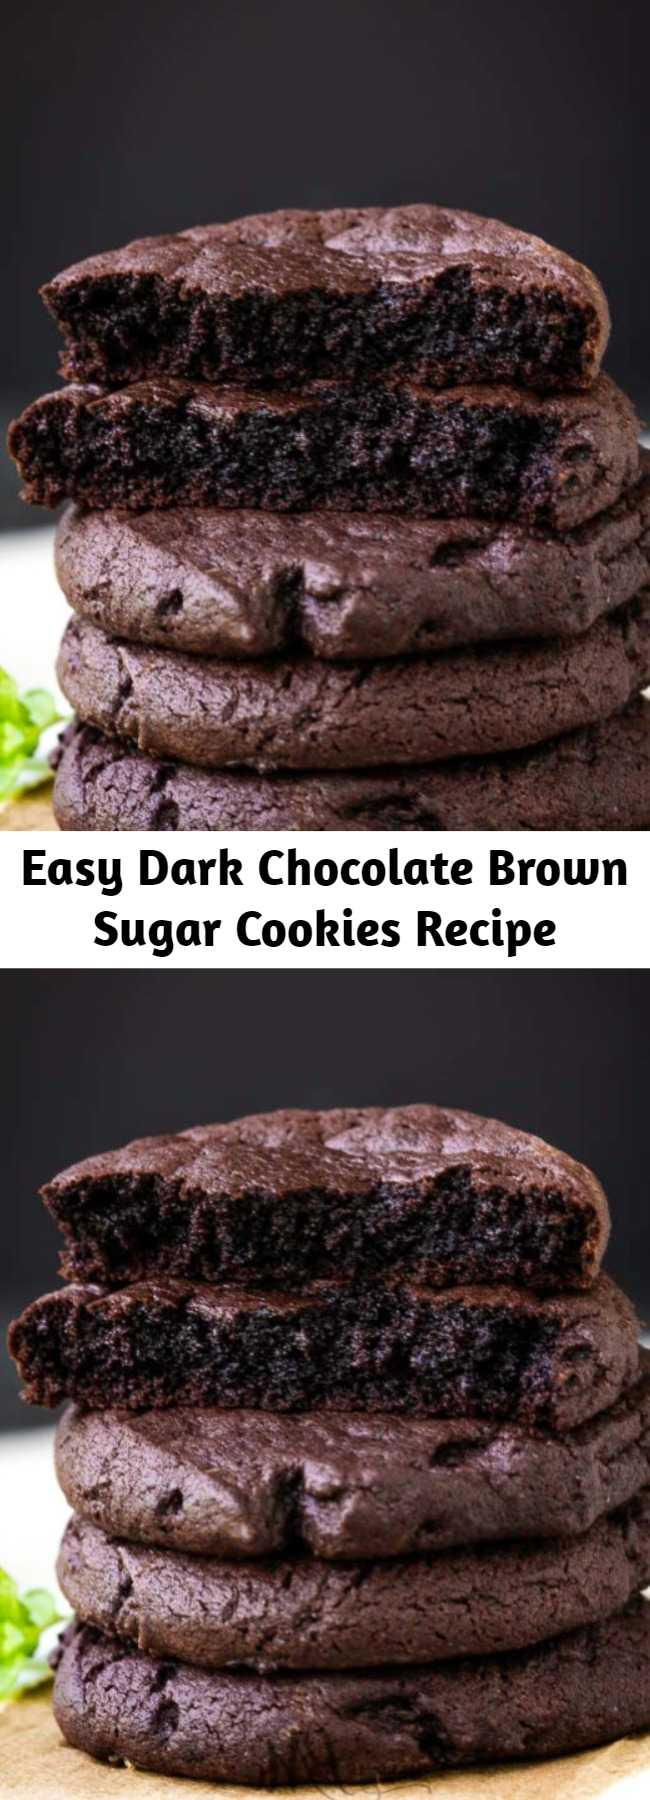 Easy Dark Chocolate Brown Sugar Cookies Recipe - Dark Chocolate Brown Sugar Cookies have the perfect chewy texture on the inside with just a bit of crisp on the outside. #darkchocolate #chocolate #cookies #easy #Oreo #recipes #chewy